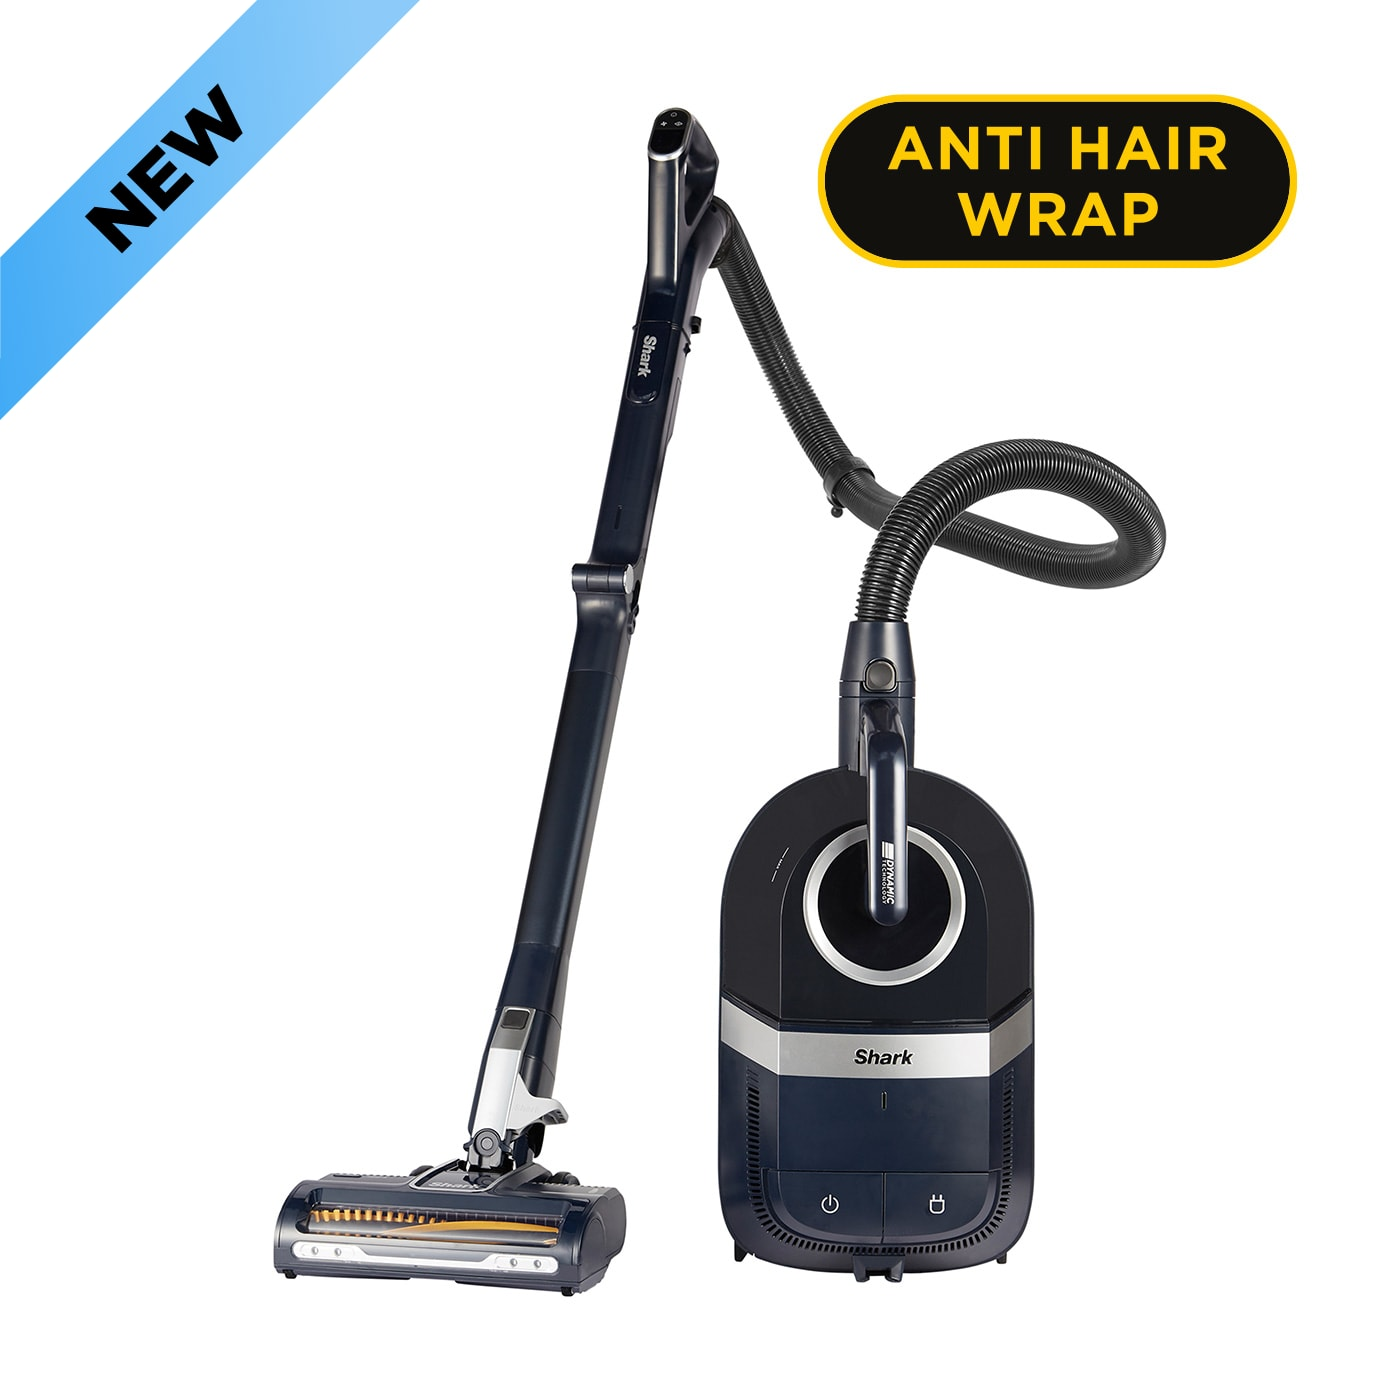 Shark Bagless Cylinder Vacuum Cleaner with Dynamic Technology & Anti Hair Wrap, Pet Model [CZ250UKT] product photo